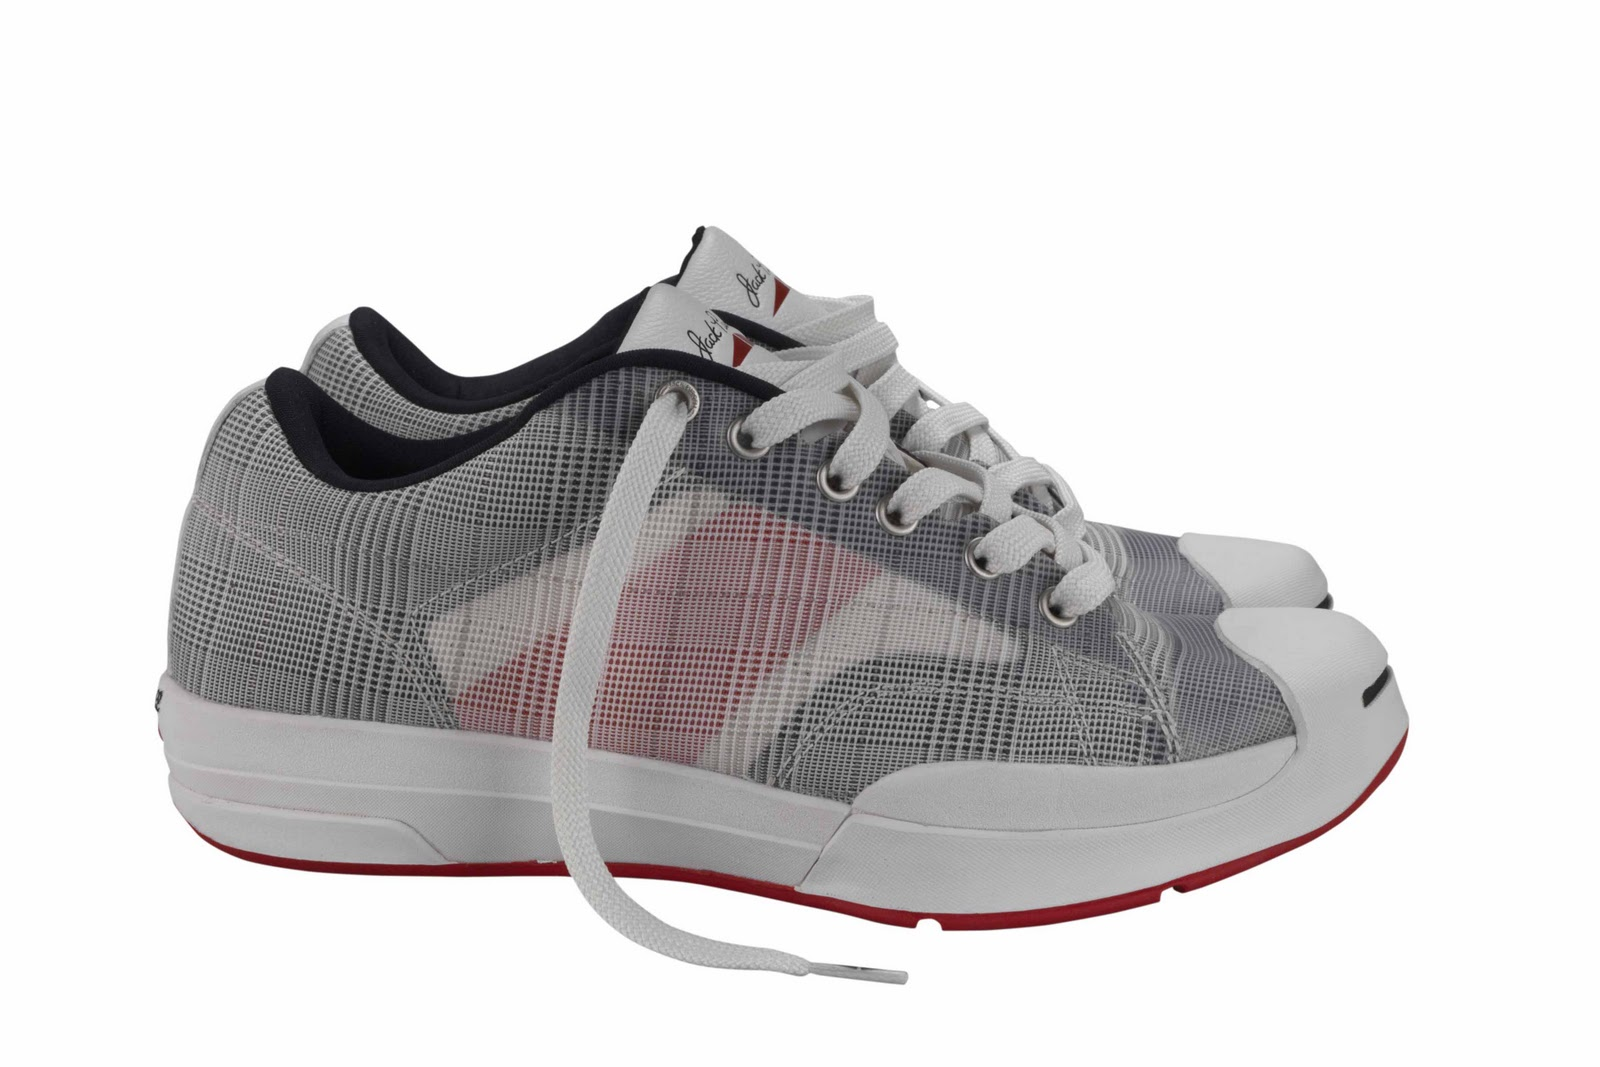 the converse converse purcell evo performance